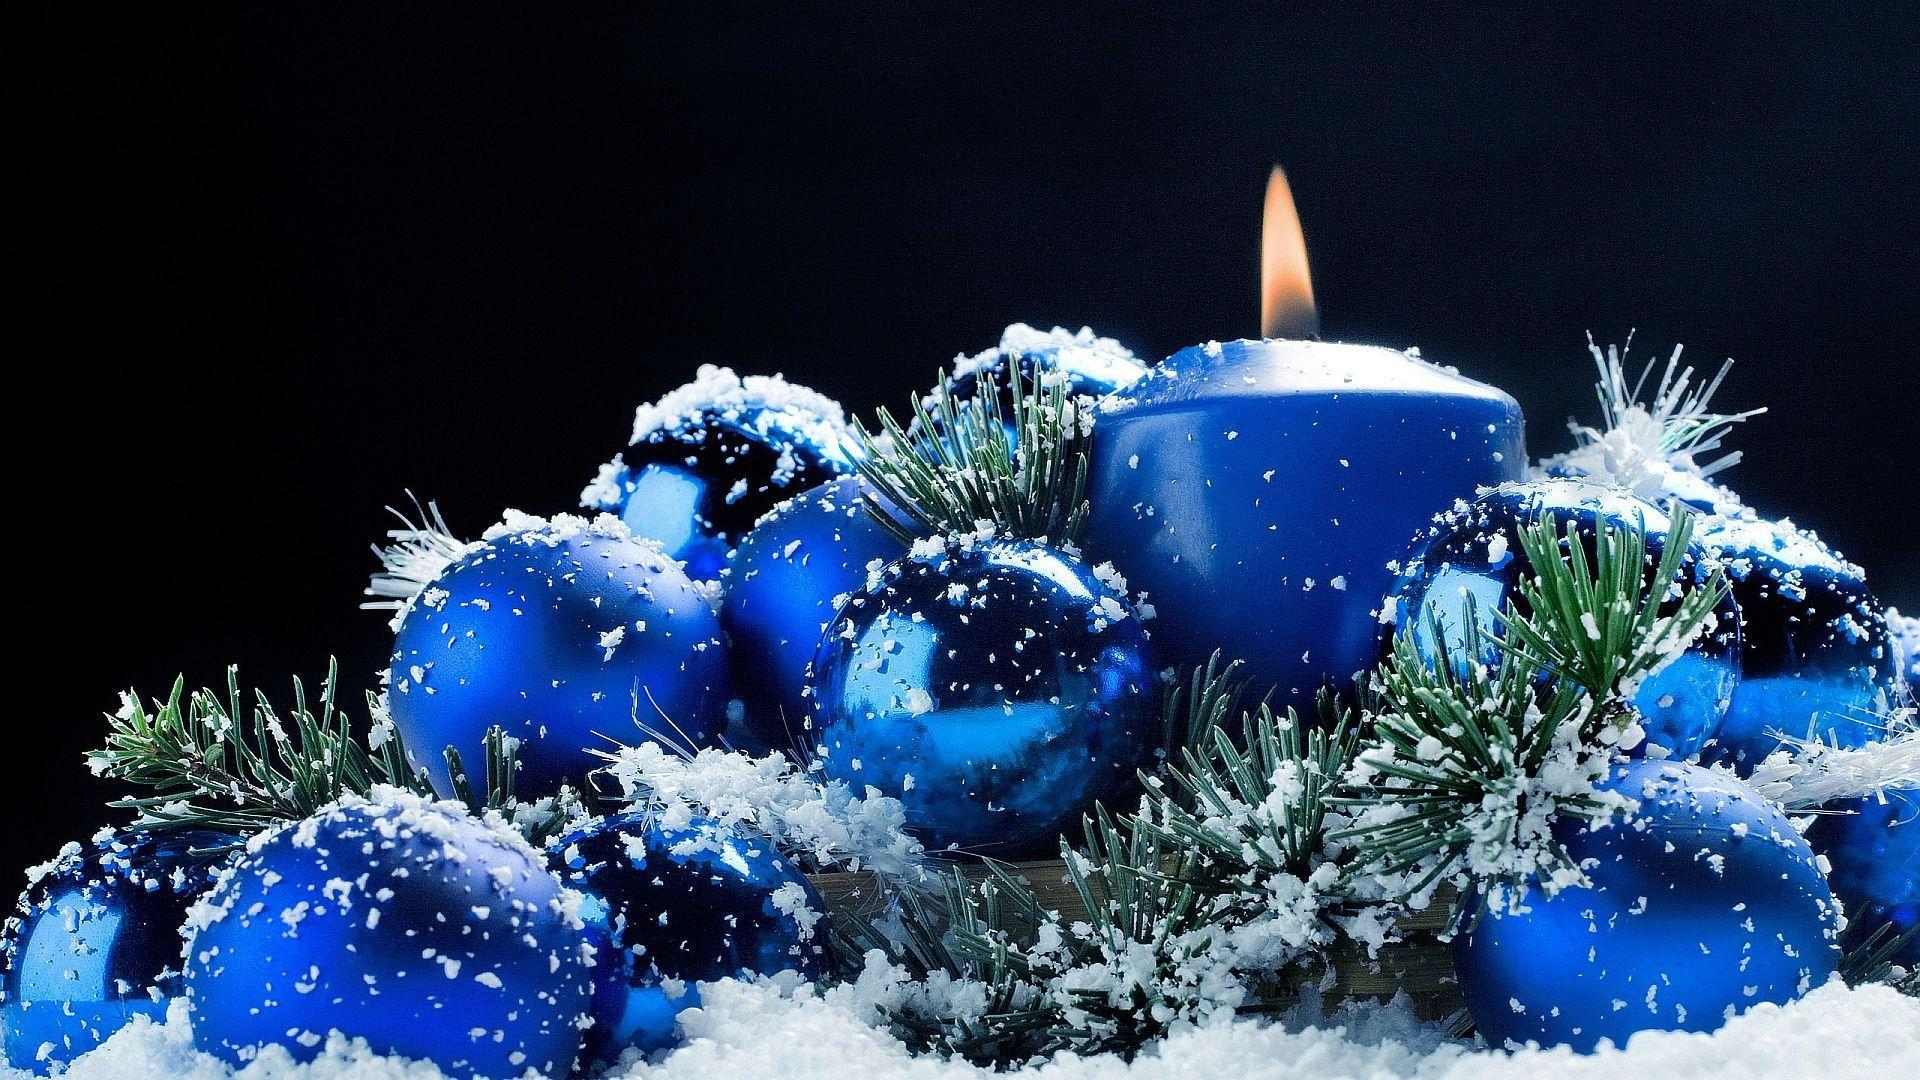 1920x1080 Christmas candle Wallpapers